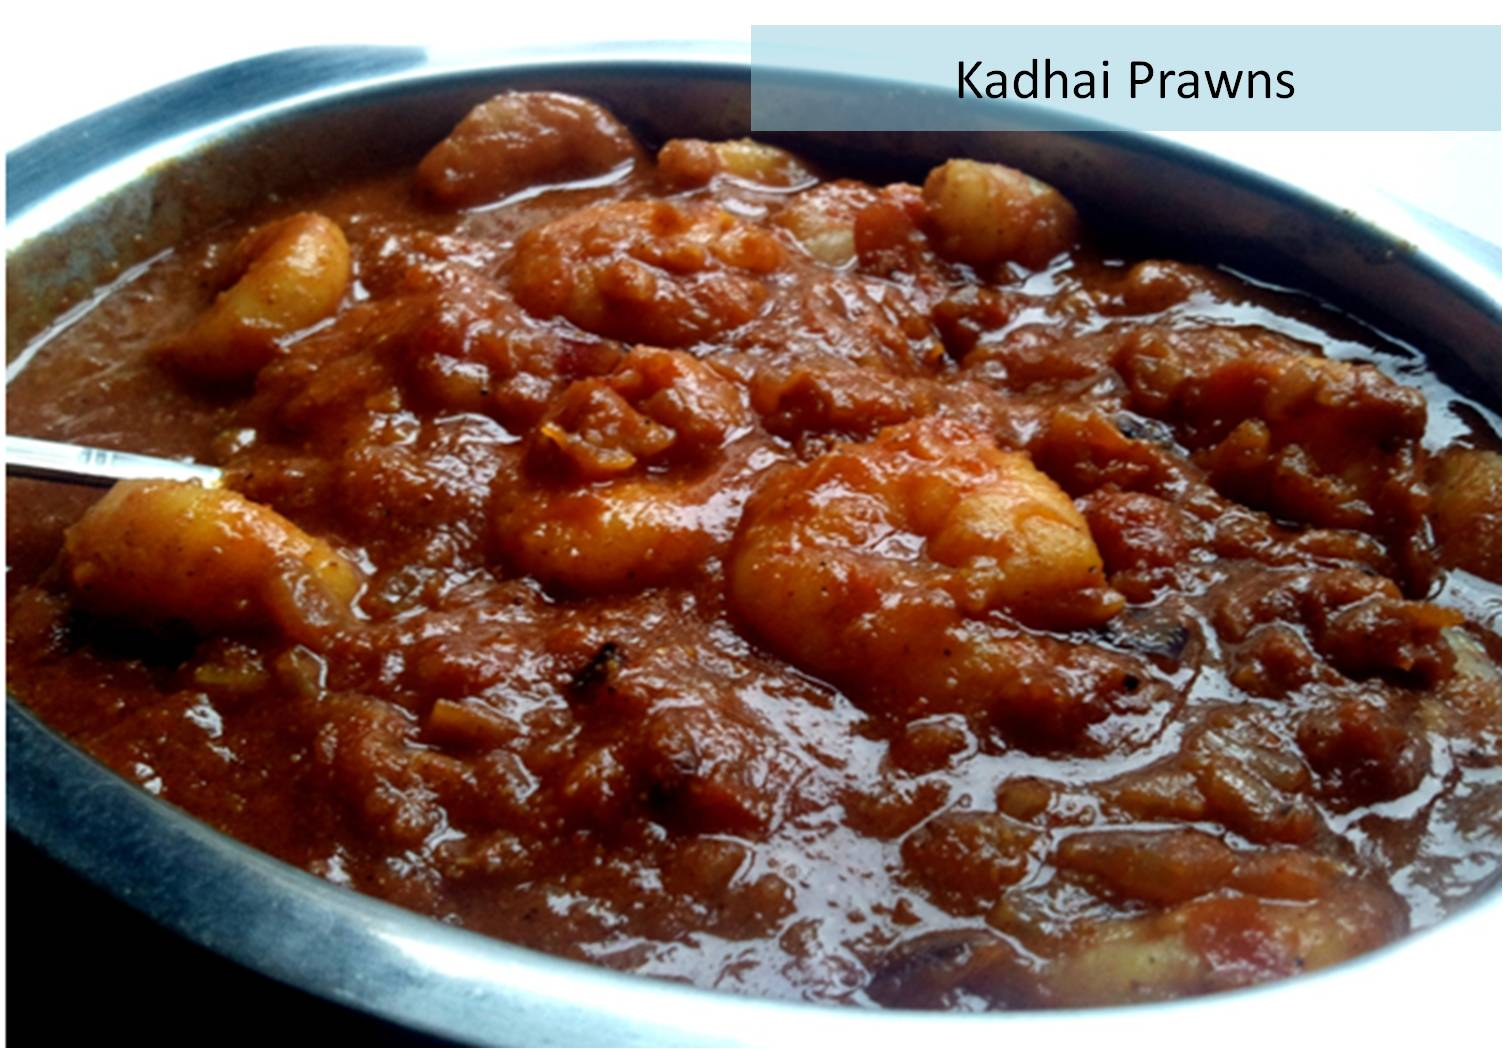 In my dorm: Kadhai Prawns